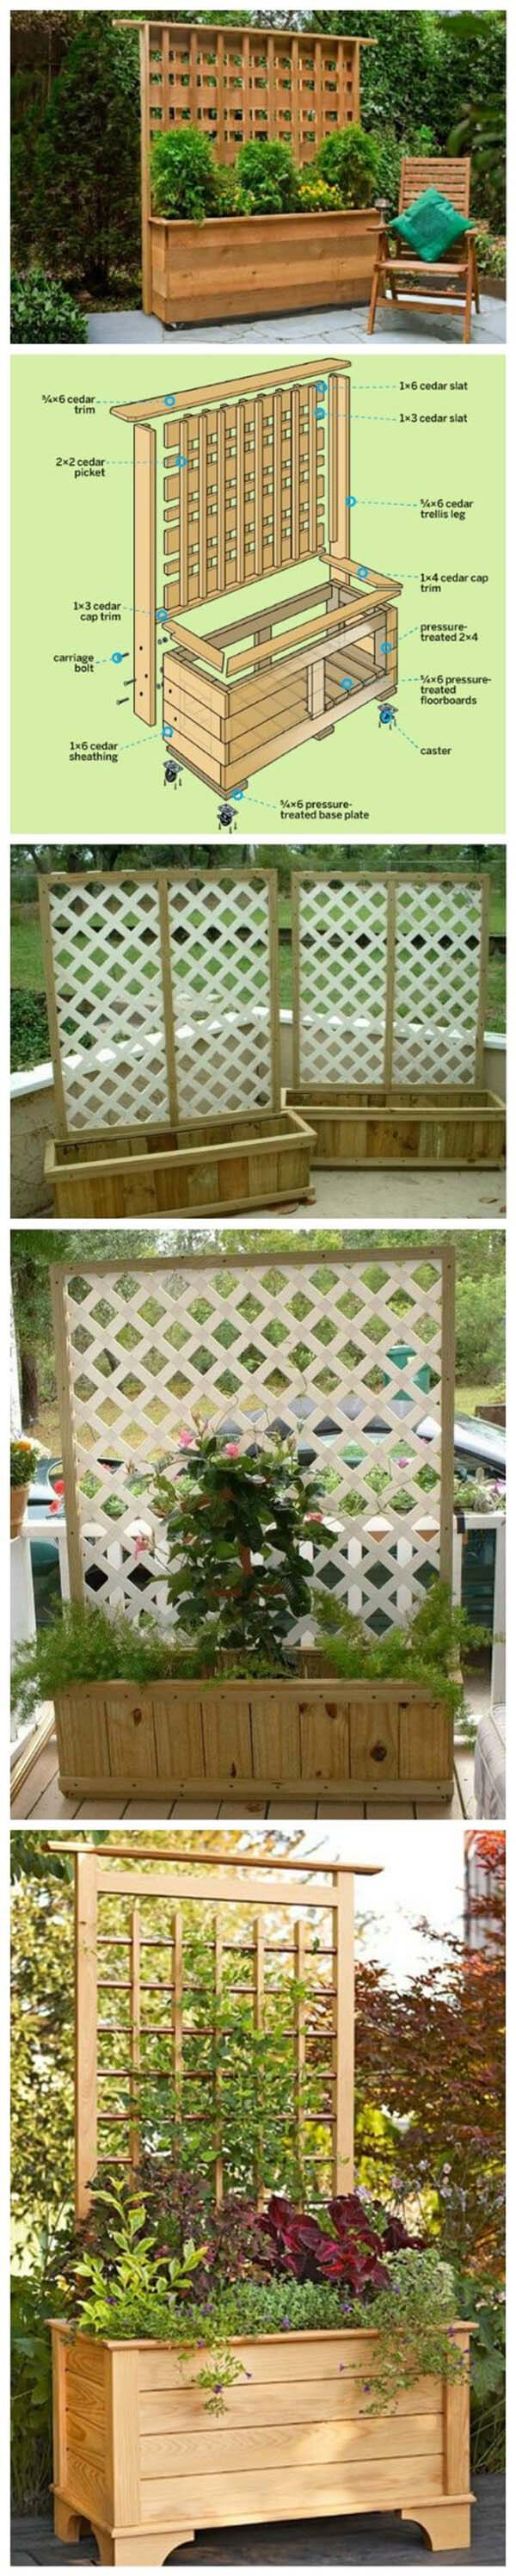 DIY Planter Box with Climbing Trellis #diy #planter #wood #flower #pallet #decorhomeideas